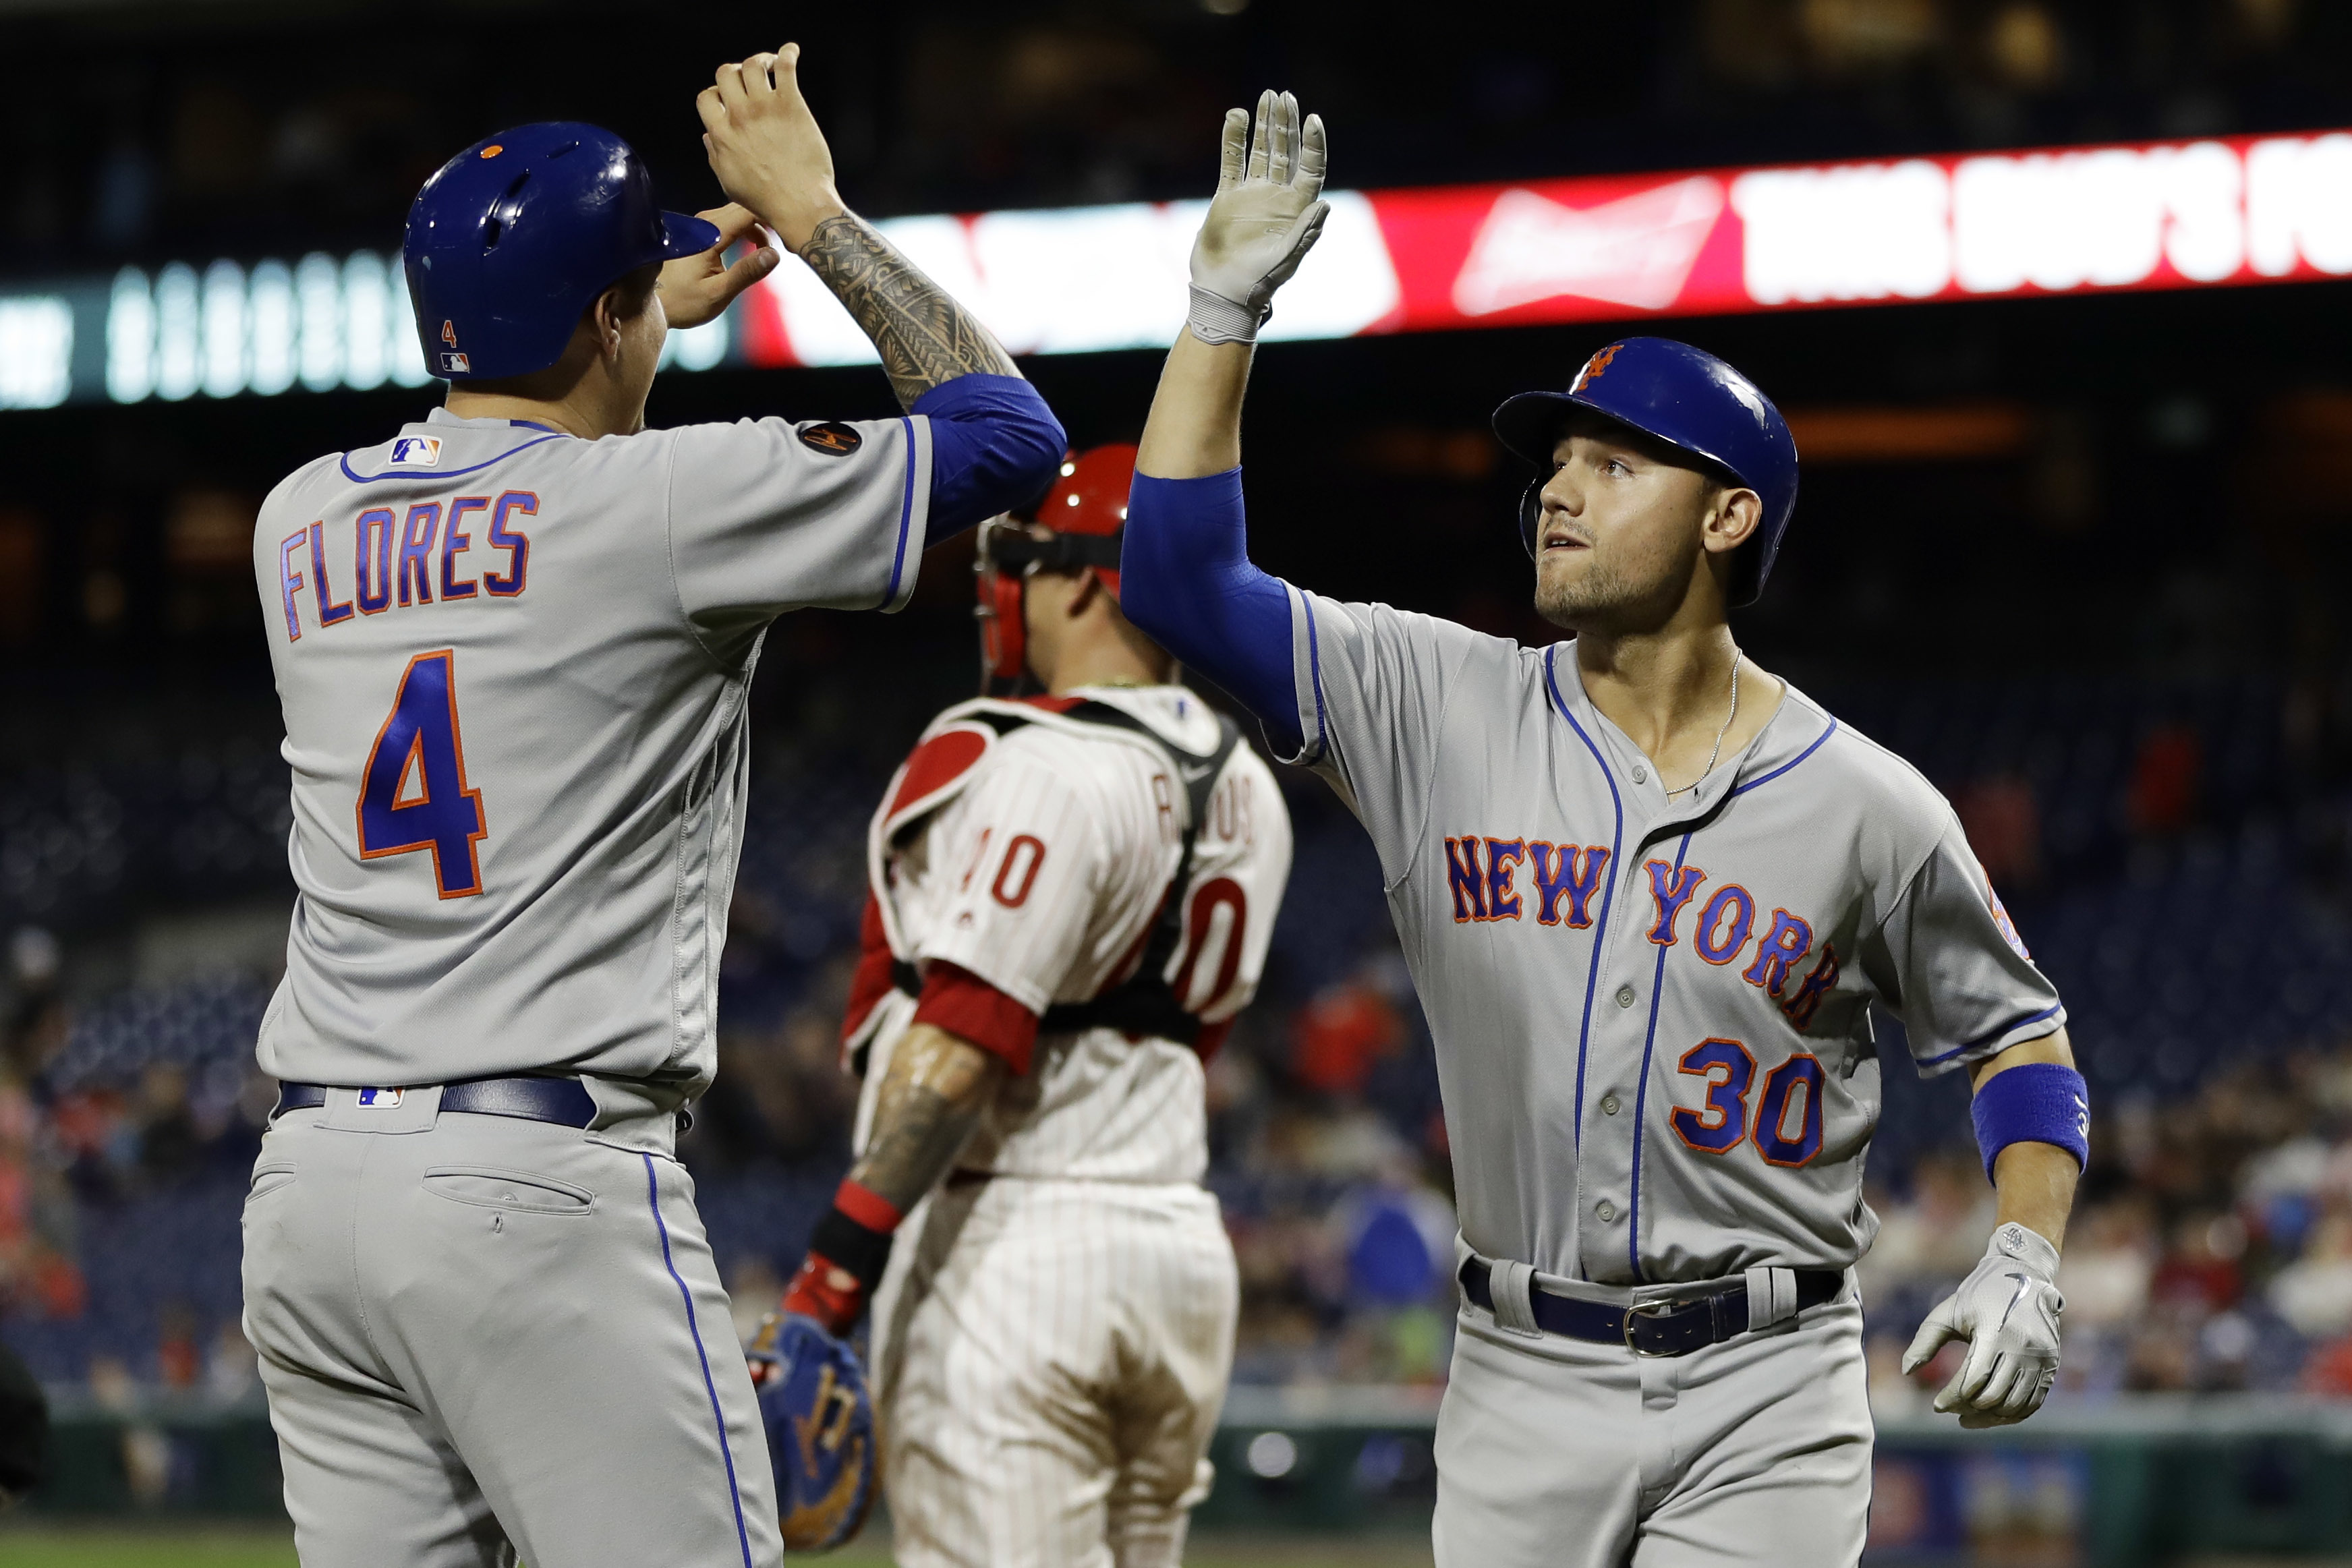 Conforto drives in career-best 6, Mets top Phillies 9-4